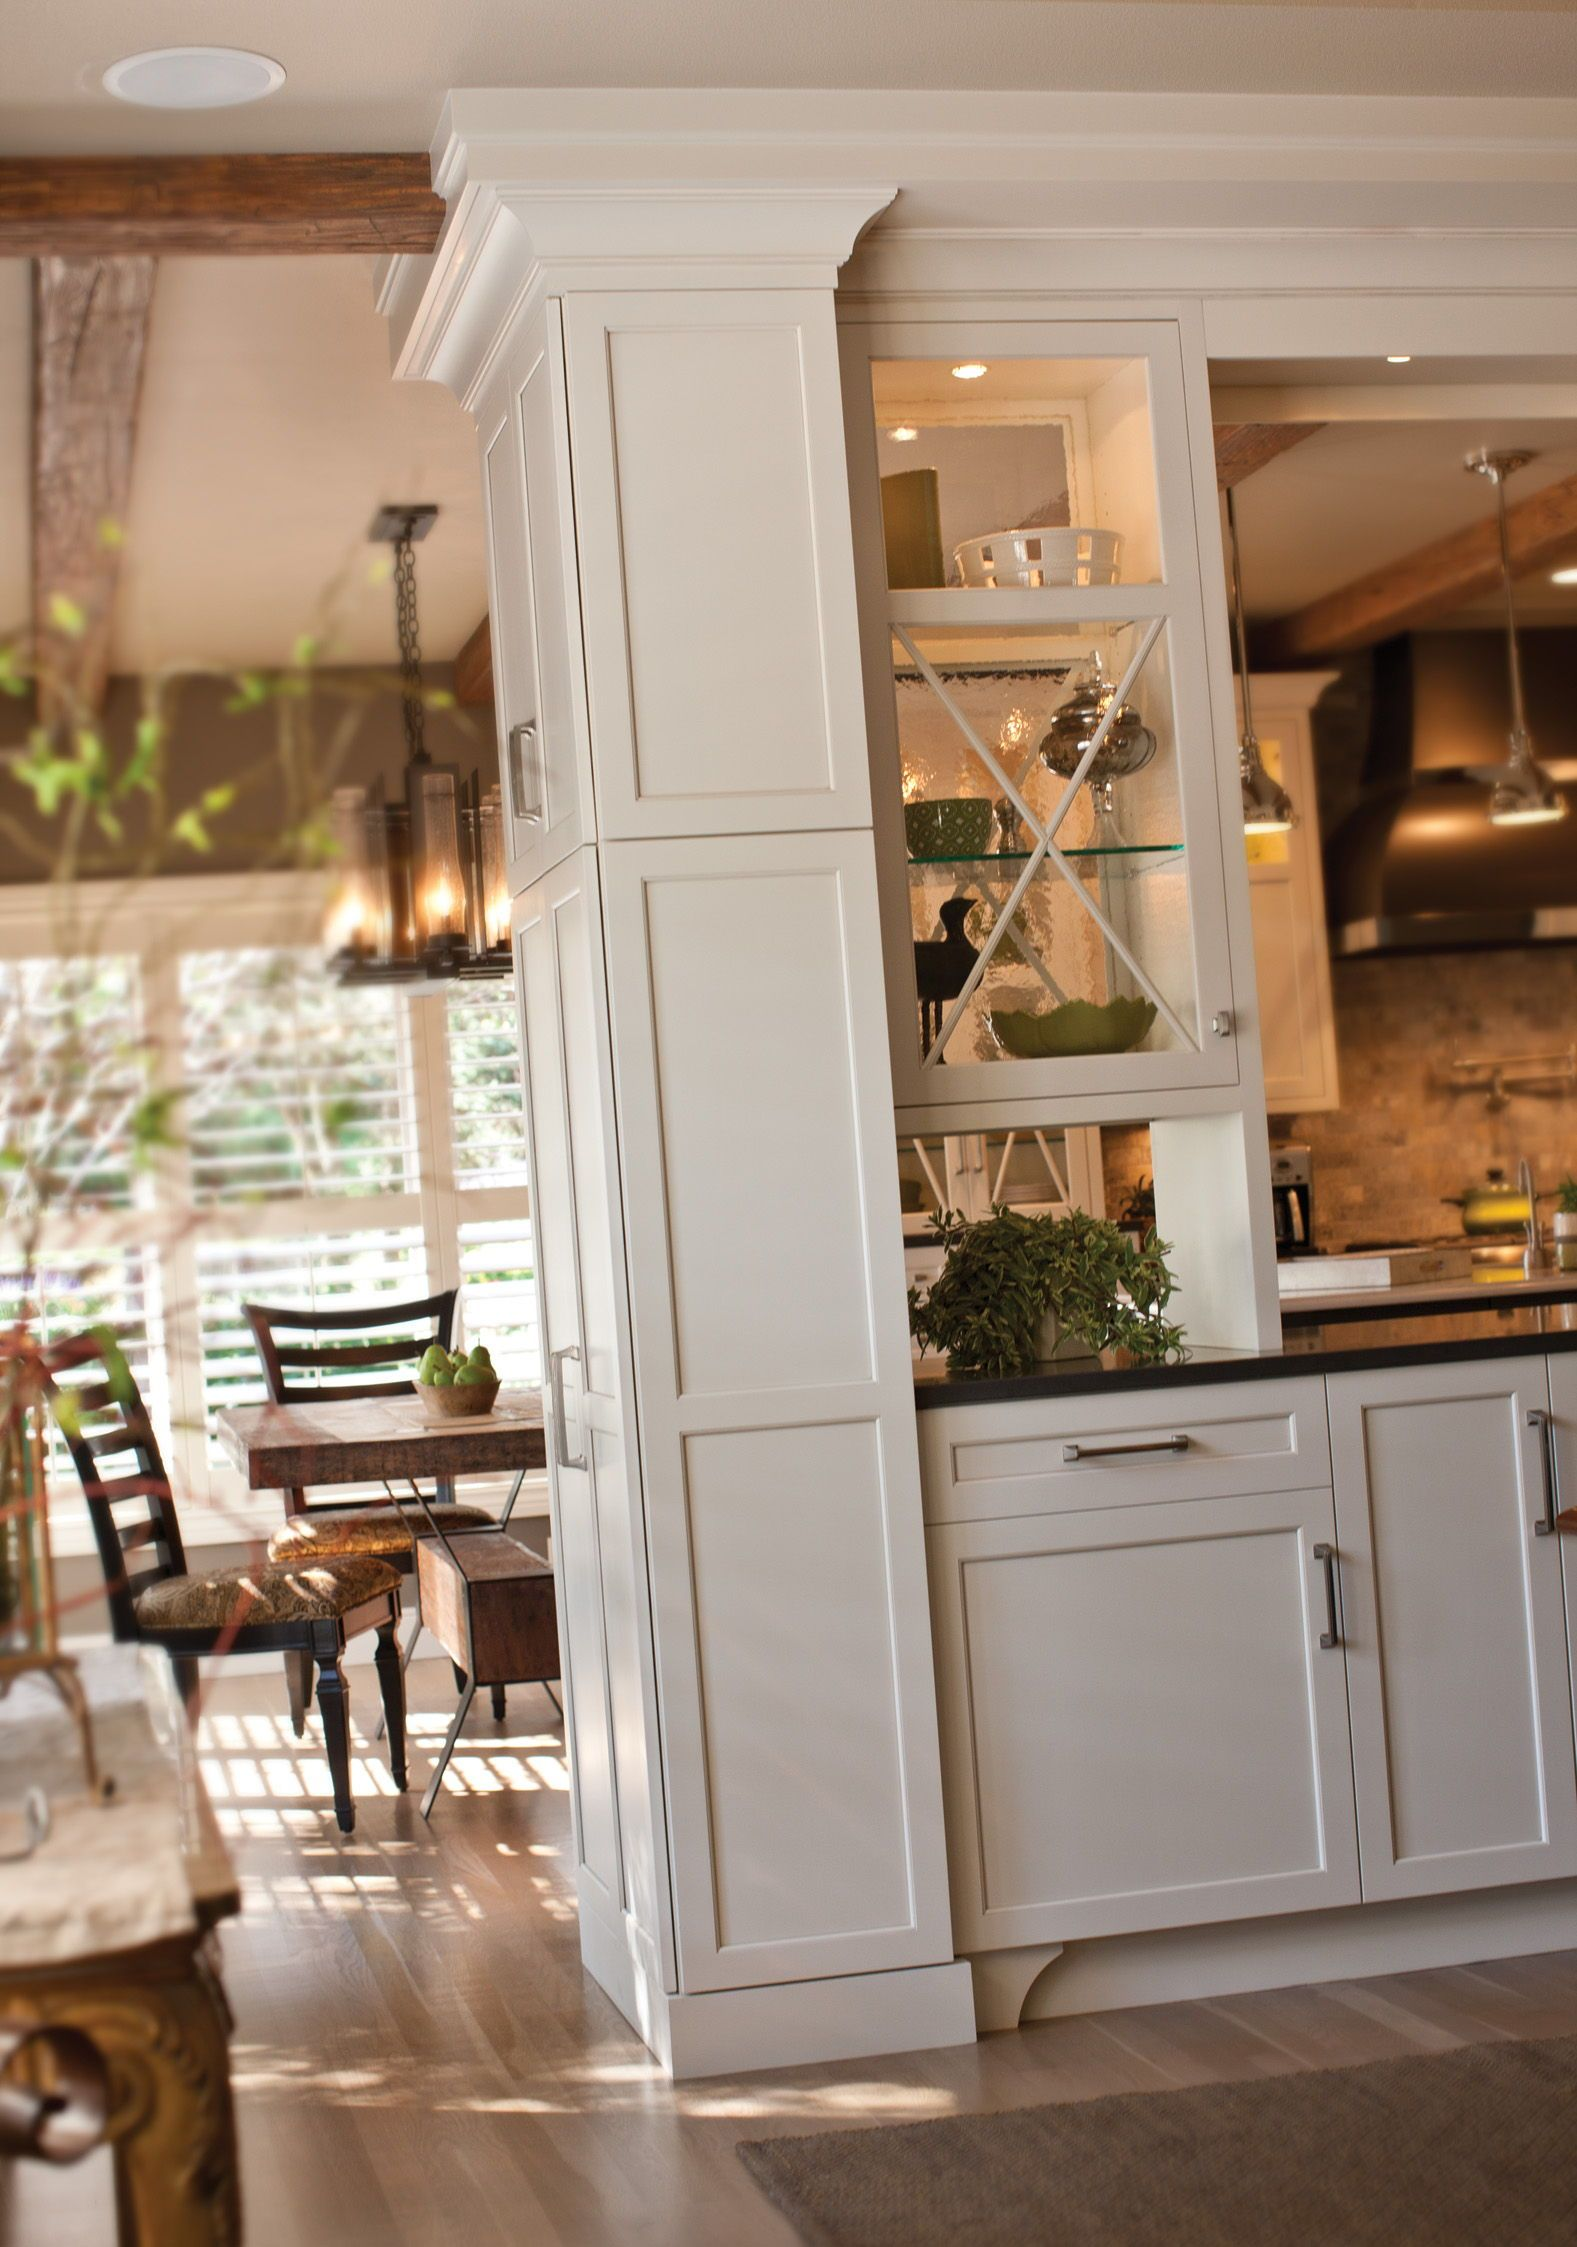 White Painted Cabinets As Wall Divider For Beautiful Storage In 2020 Cottage Dining Rooms Kitchen Design Decor Classic Kitchen Design